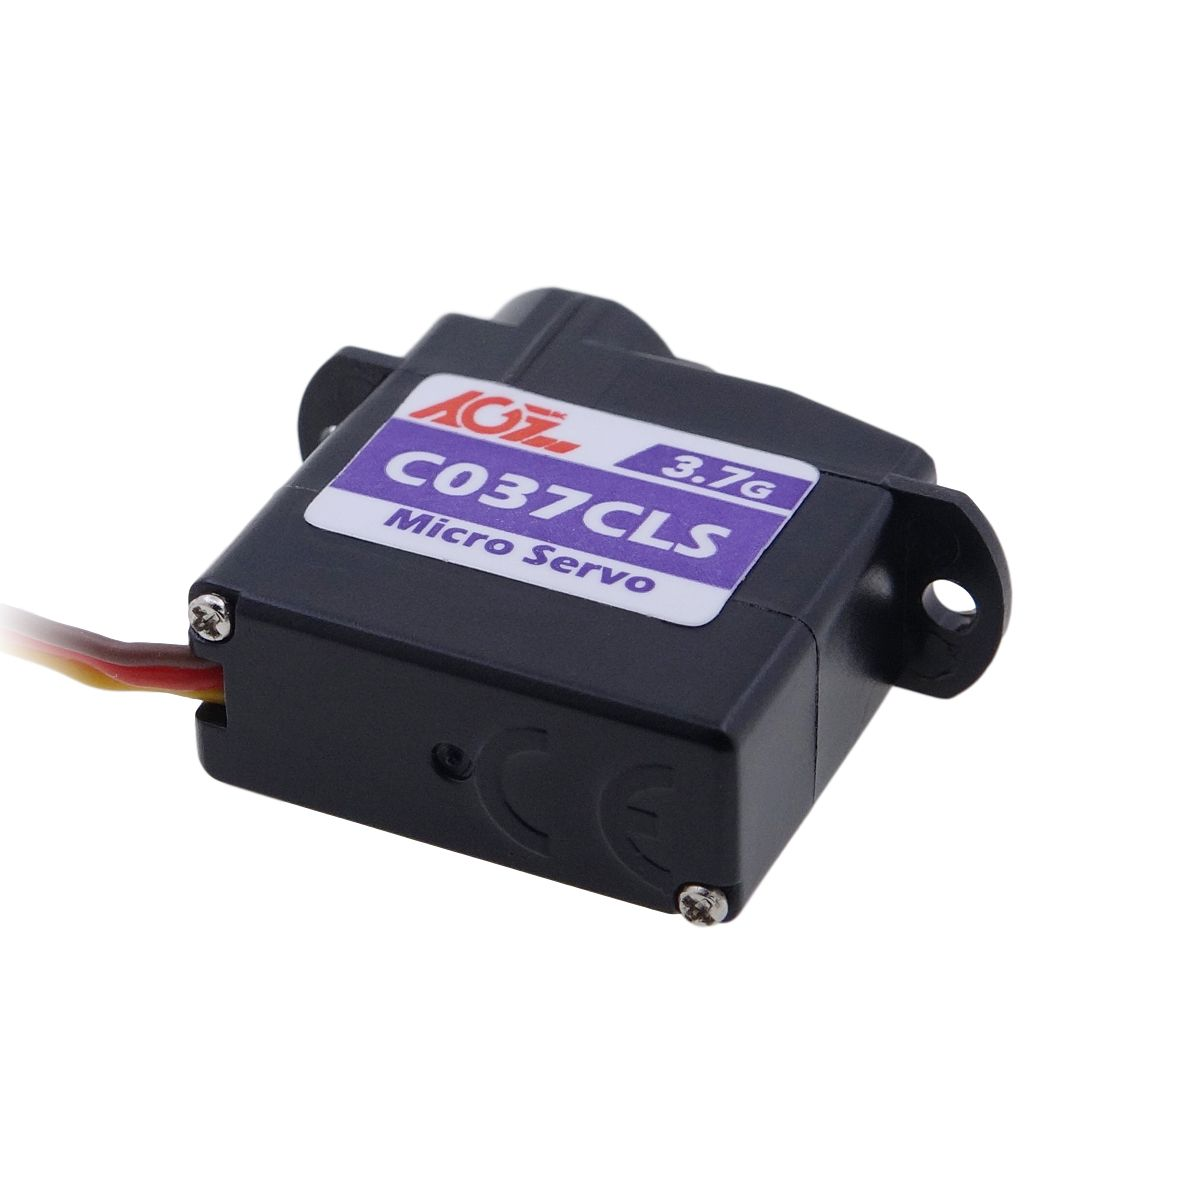 AGFRC C037CLS Super Light 3.7g Fast Response Plastic Micro Servo 0.55kg / 0.06Sec For 1s Power Application